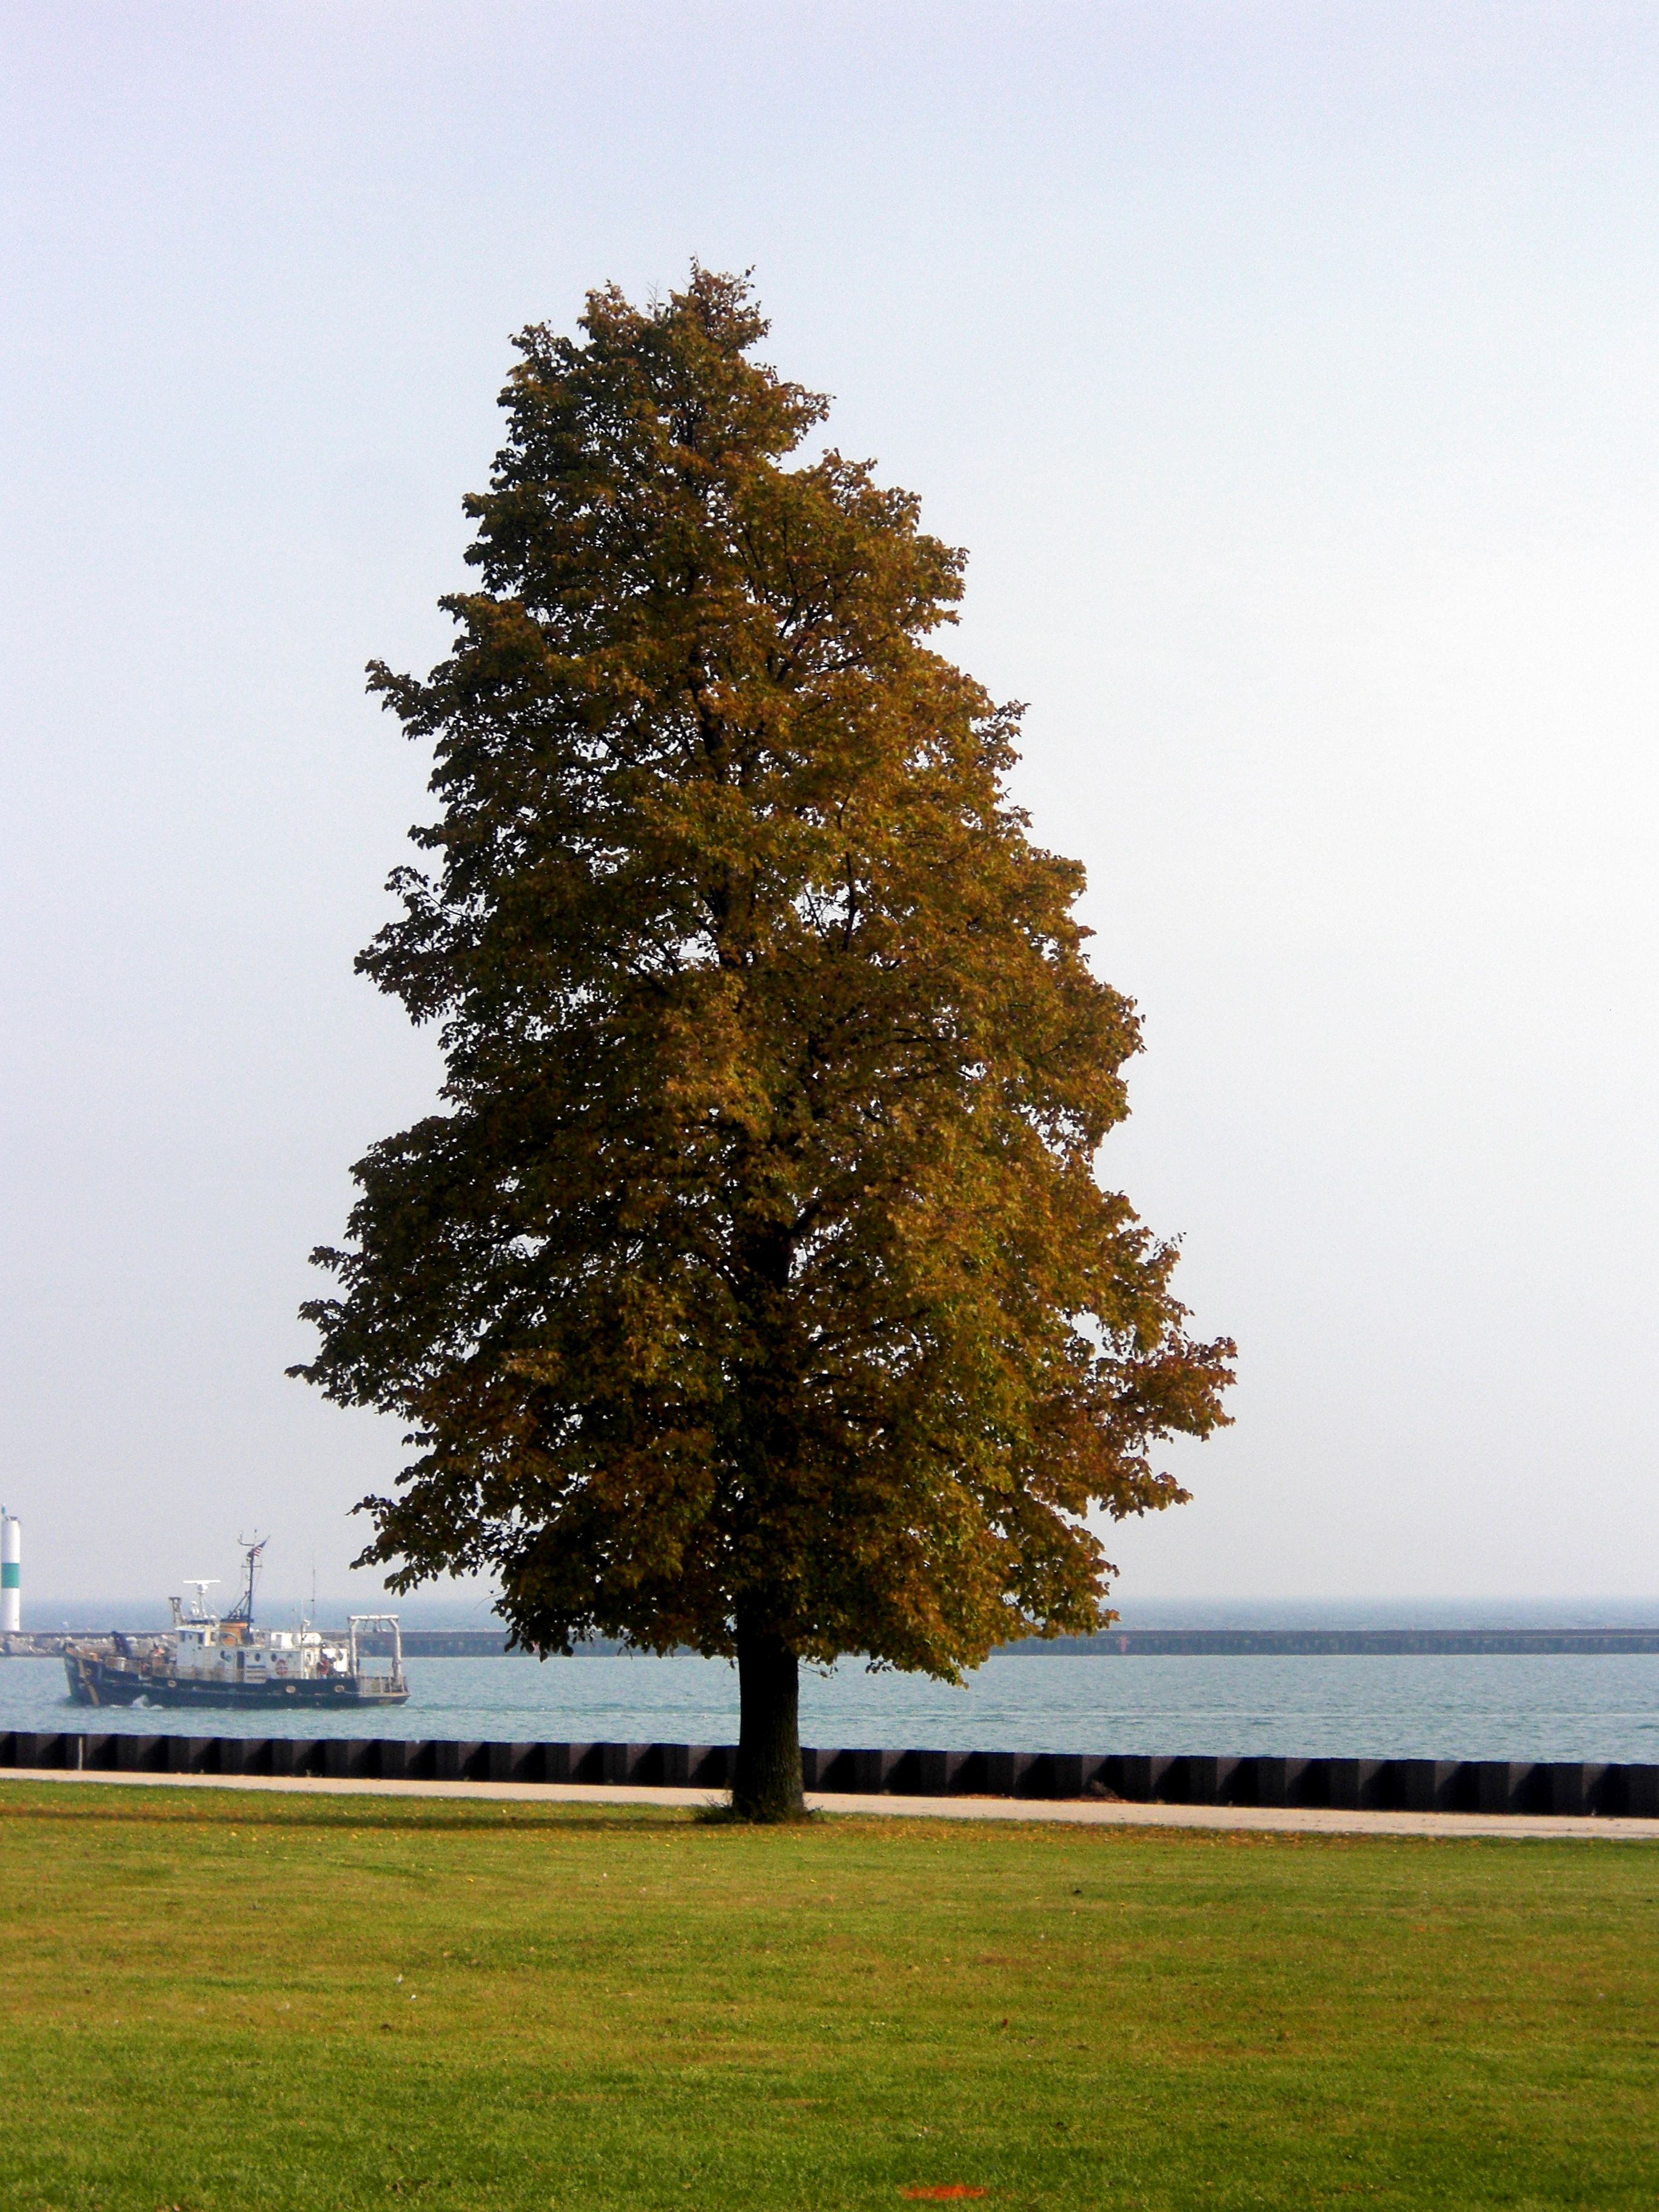 Fall, Ship, Water, Tree, Plants, HQ Photo